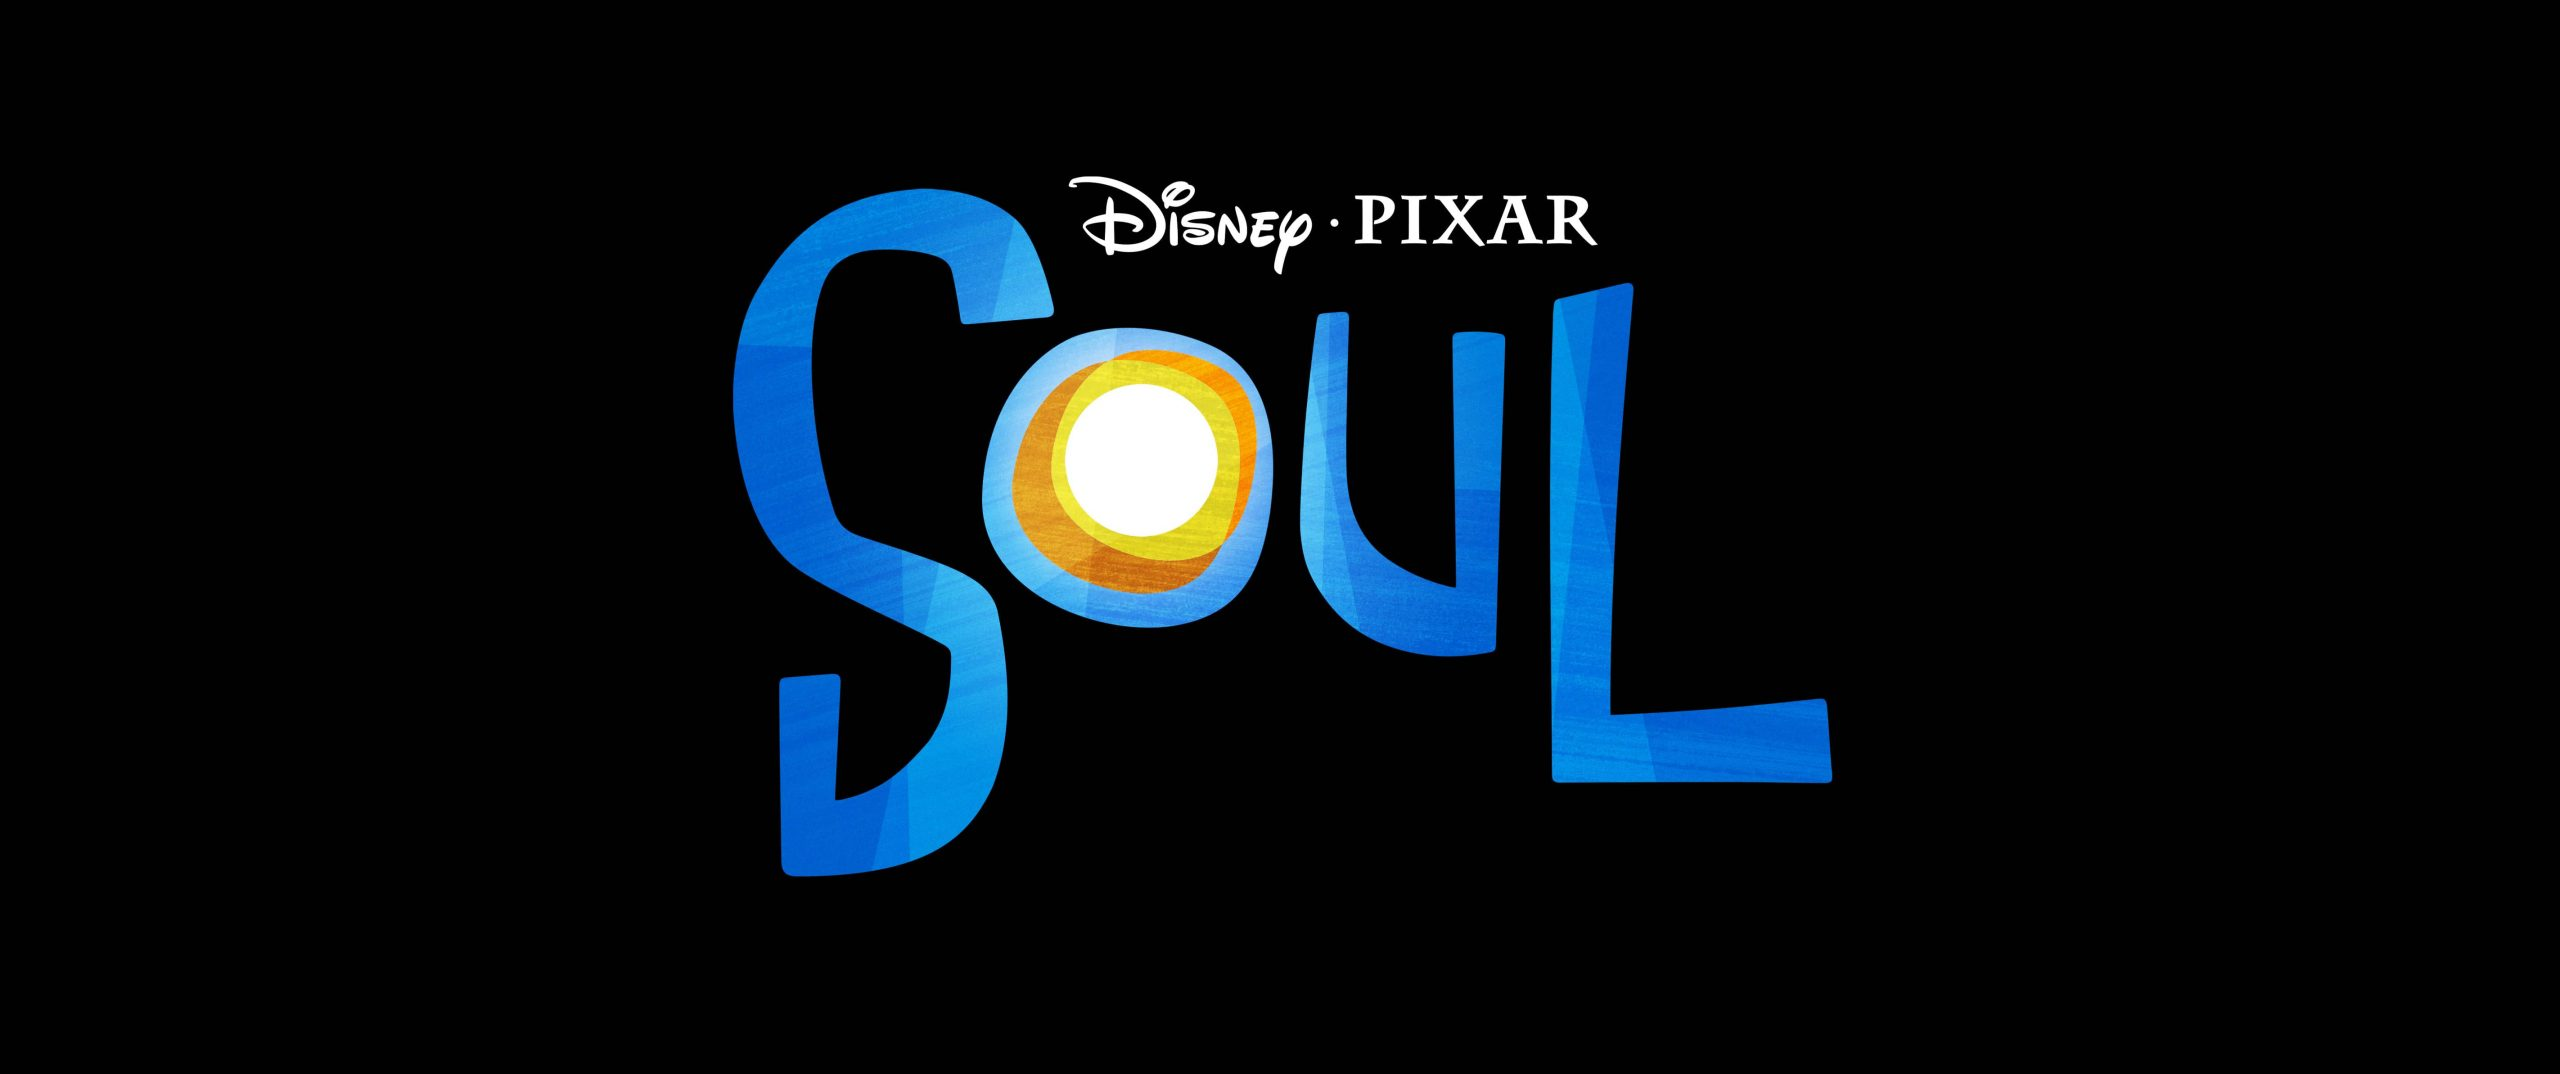 Soul Pixar Disney Logo scaled